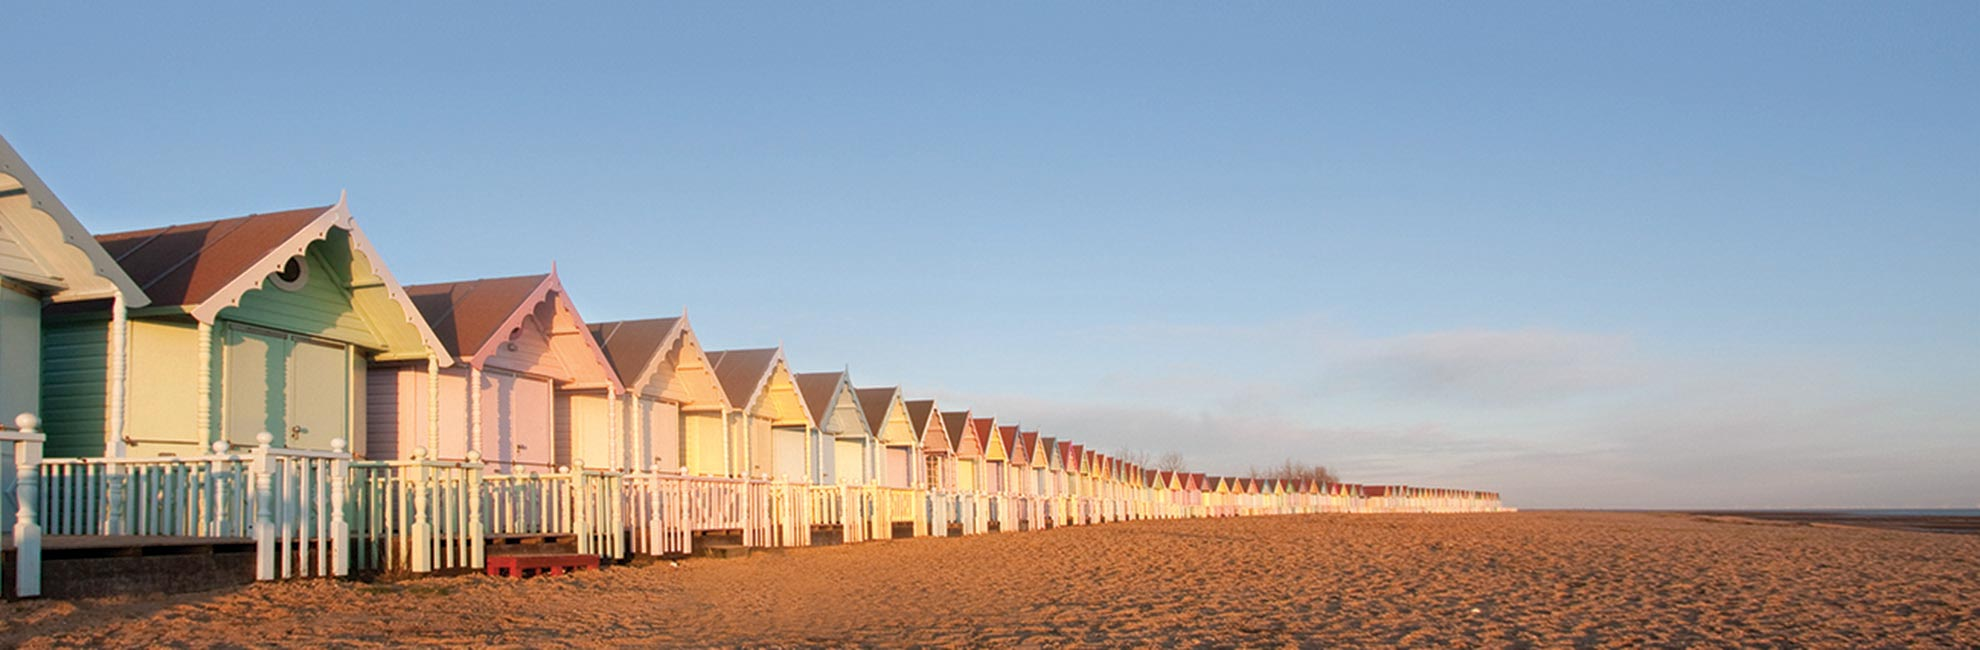 Colourful beach huts at sunrise on an Essex beach